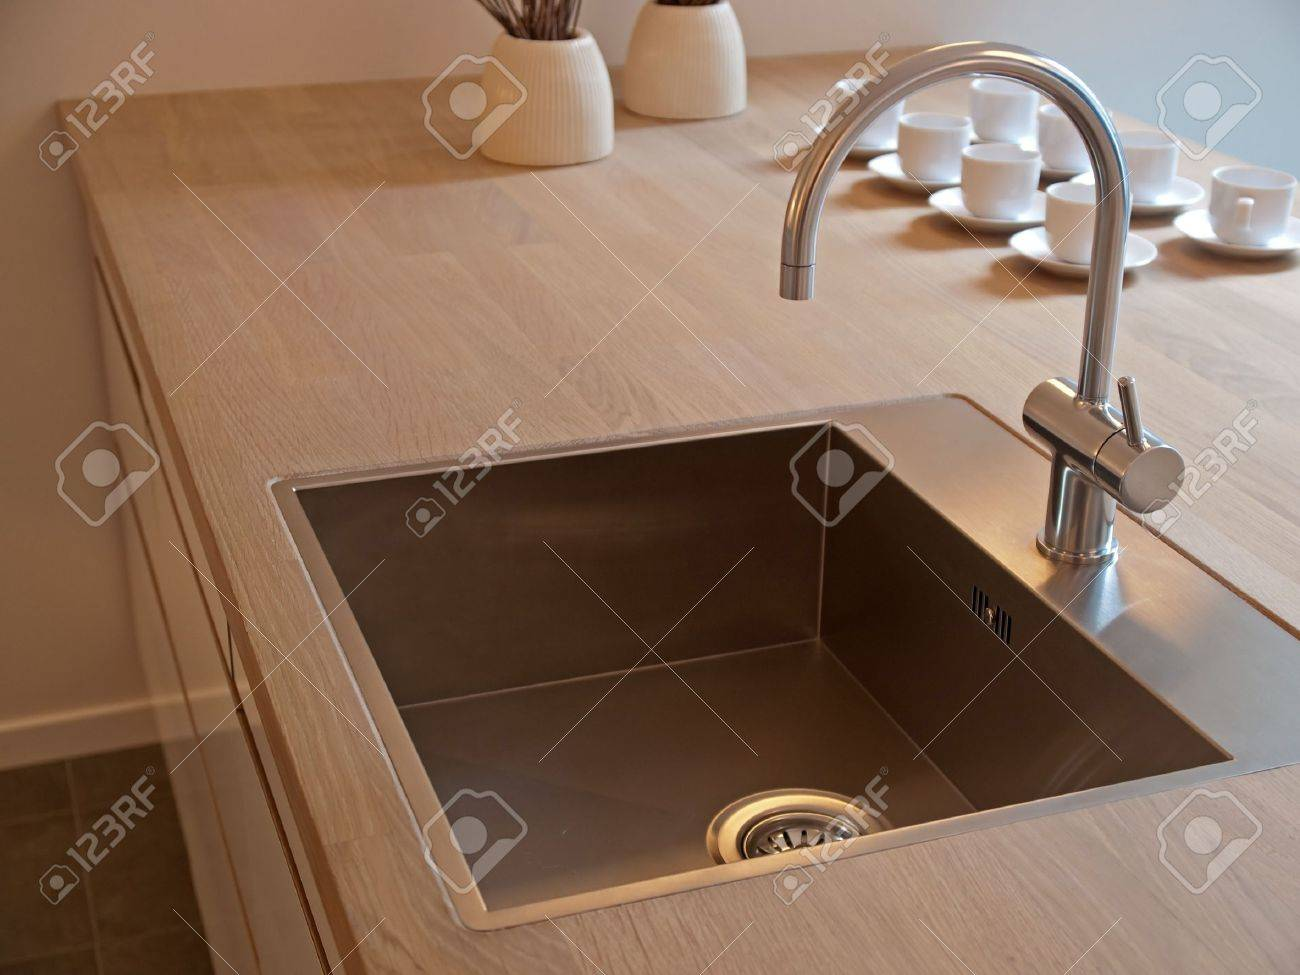 kitchen sink images & stock pictures. royalty free kitchen sink